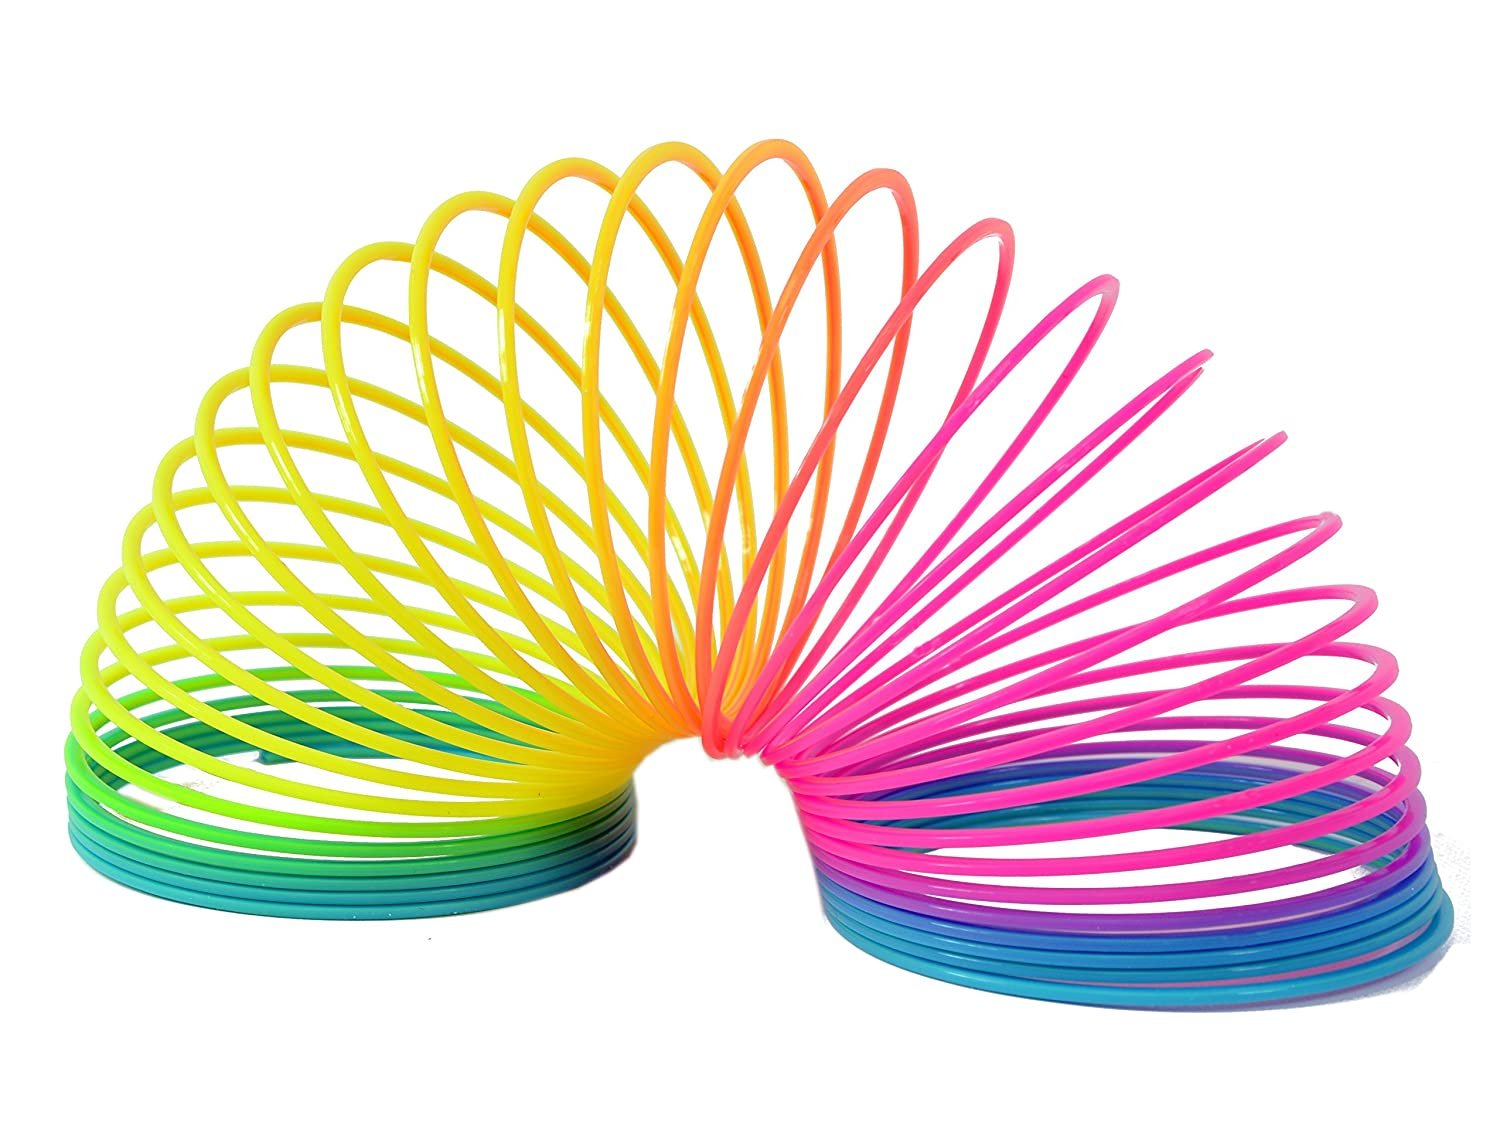 LARGE RAINBOW SPRING COIL SLINKY FUN KIDS TOY MAGIC STRETCHY BOUNCING NEW UK 6.5